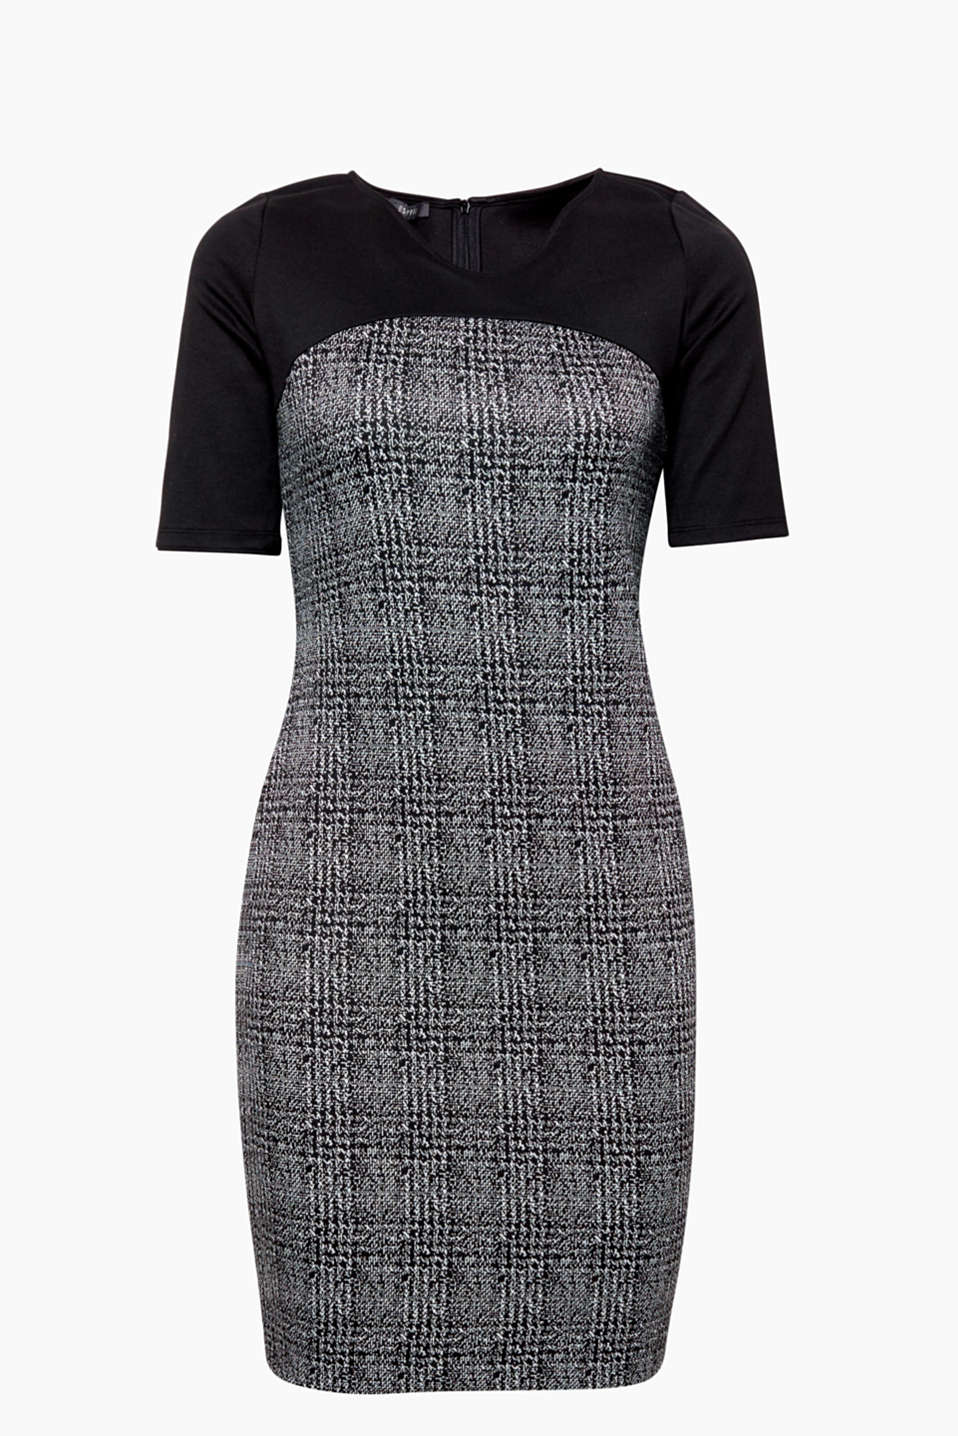 The heavenly houndstooth pattern makes this mega comfy dress perfect for lots of different occasions!